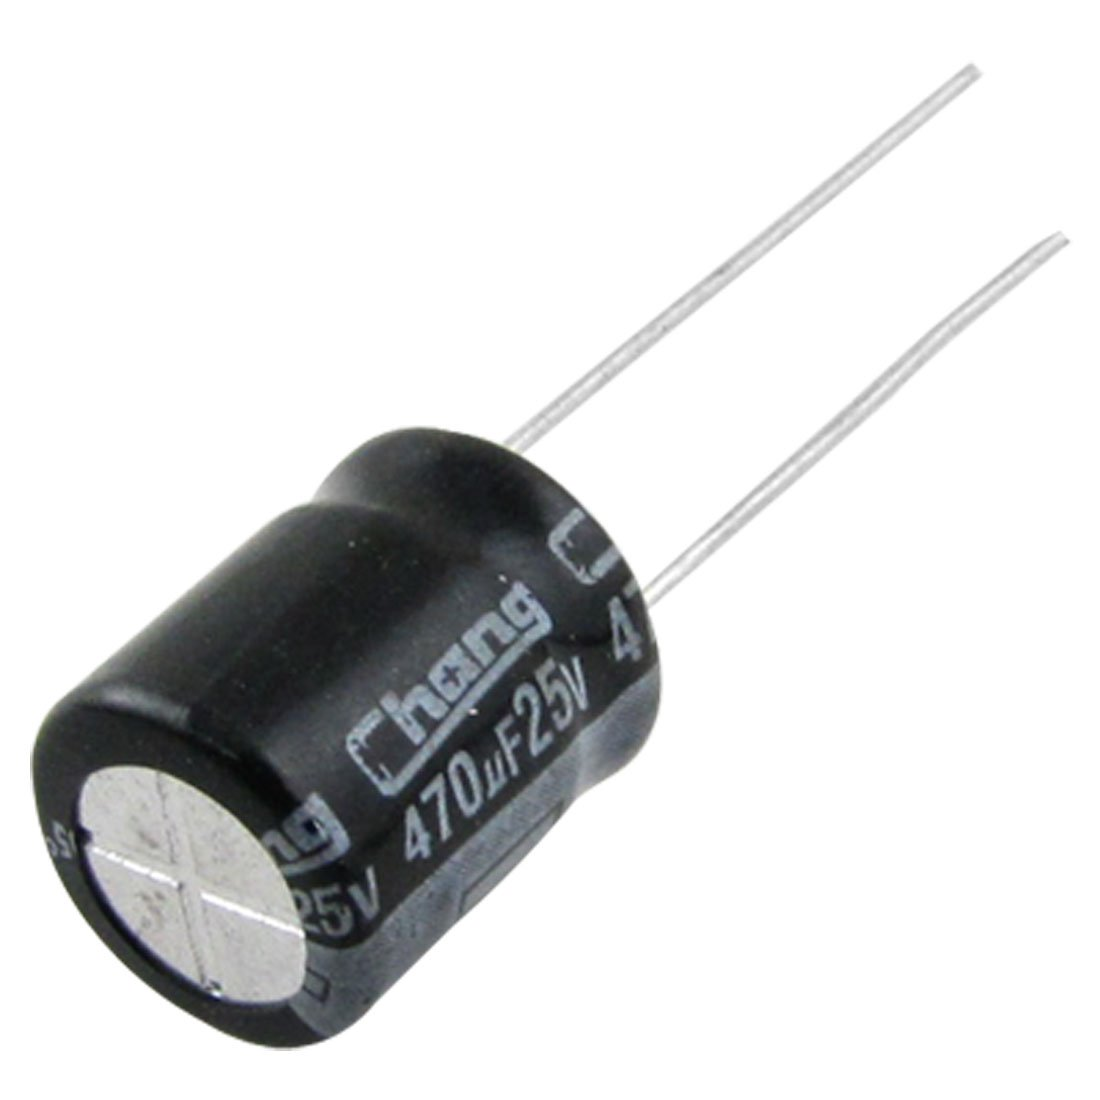 Uxcell a11091900ux0021 10mmx13 mm 470uF 25V Aluminum Electrolytic Capacitors 50 Piece